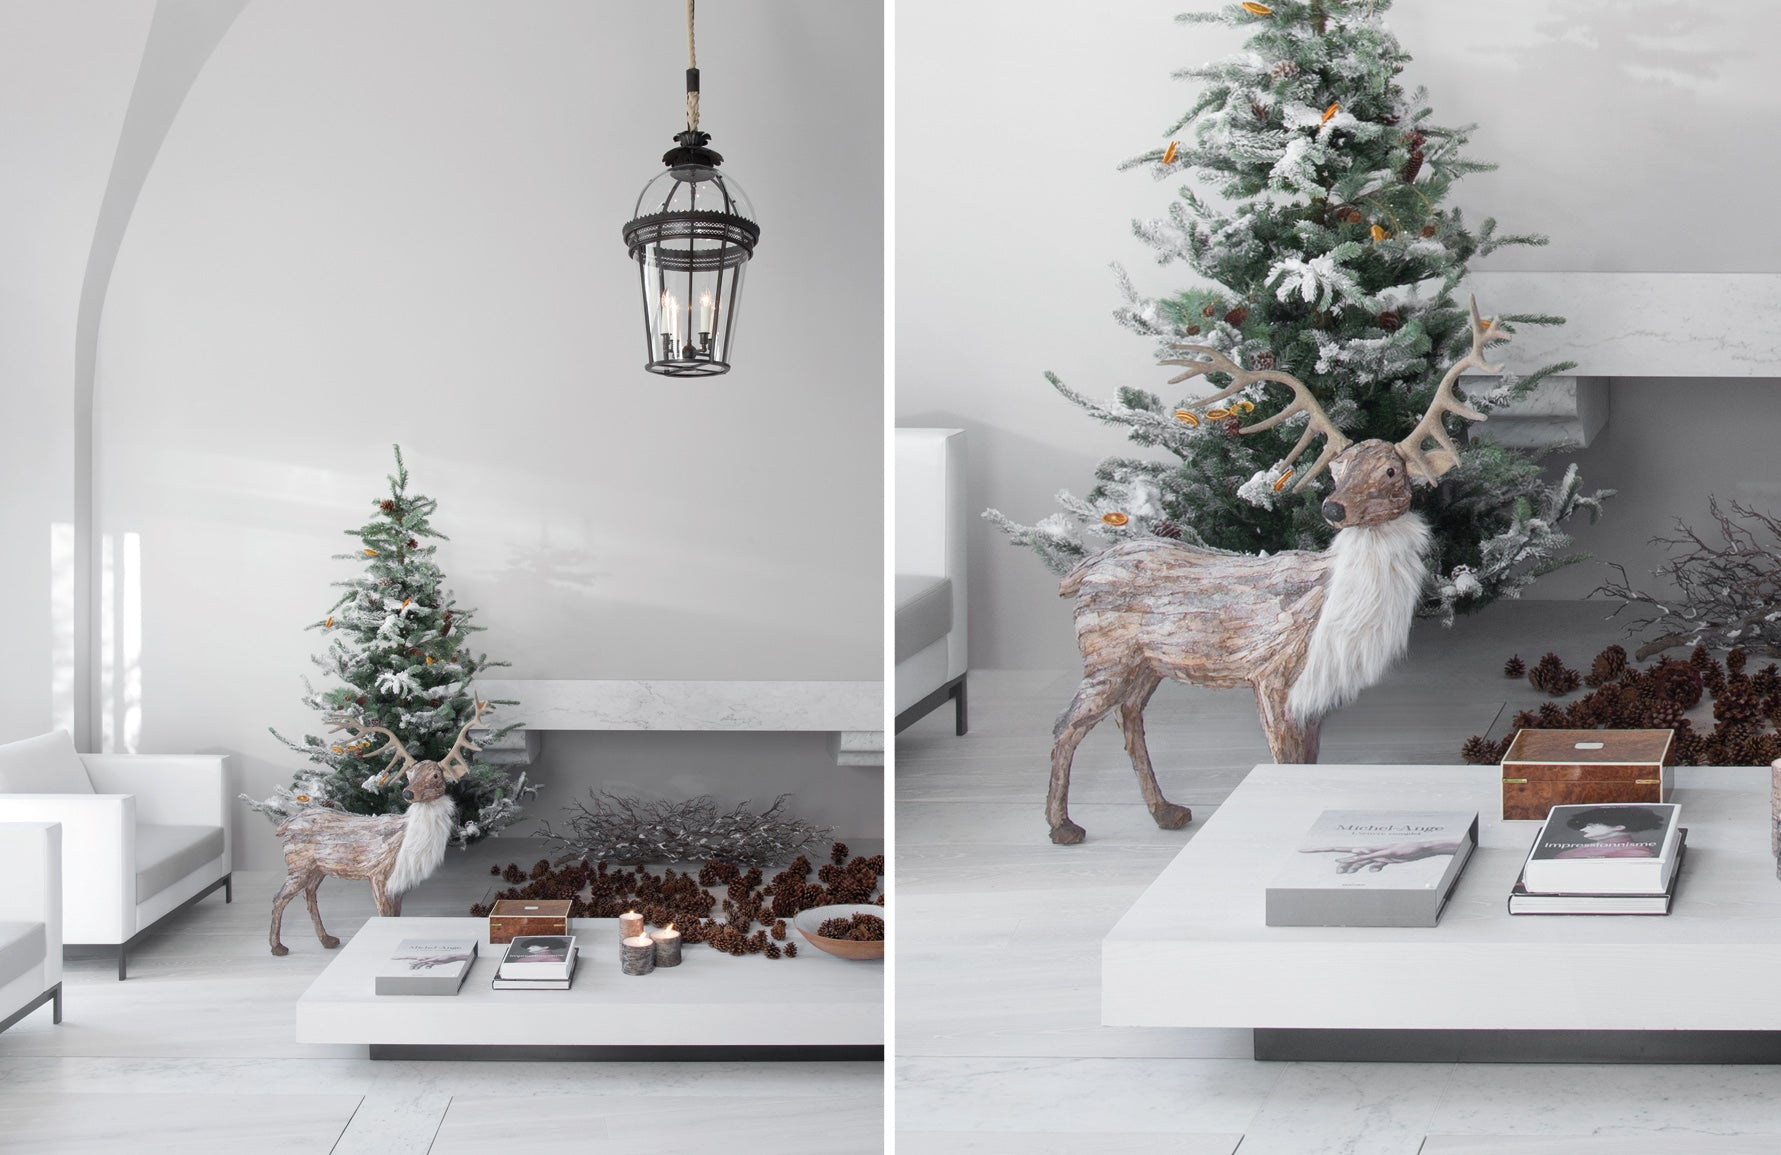 Christmas Decorating Ideas | Minimalist Christmas Decor | Interior by Guillaume Alan | Shop now at LuxDeco.com